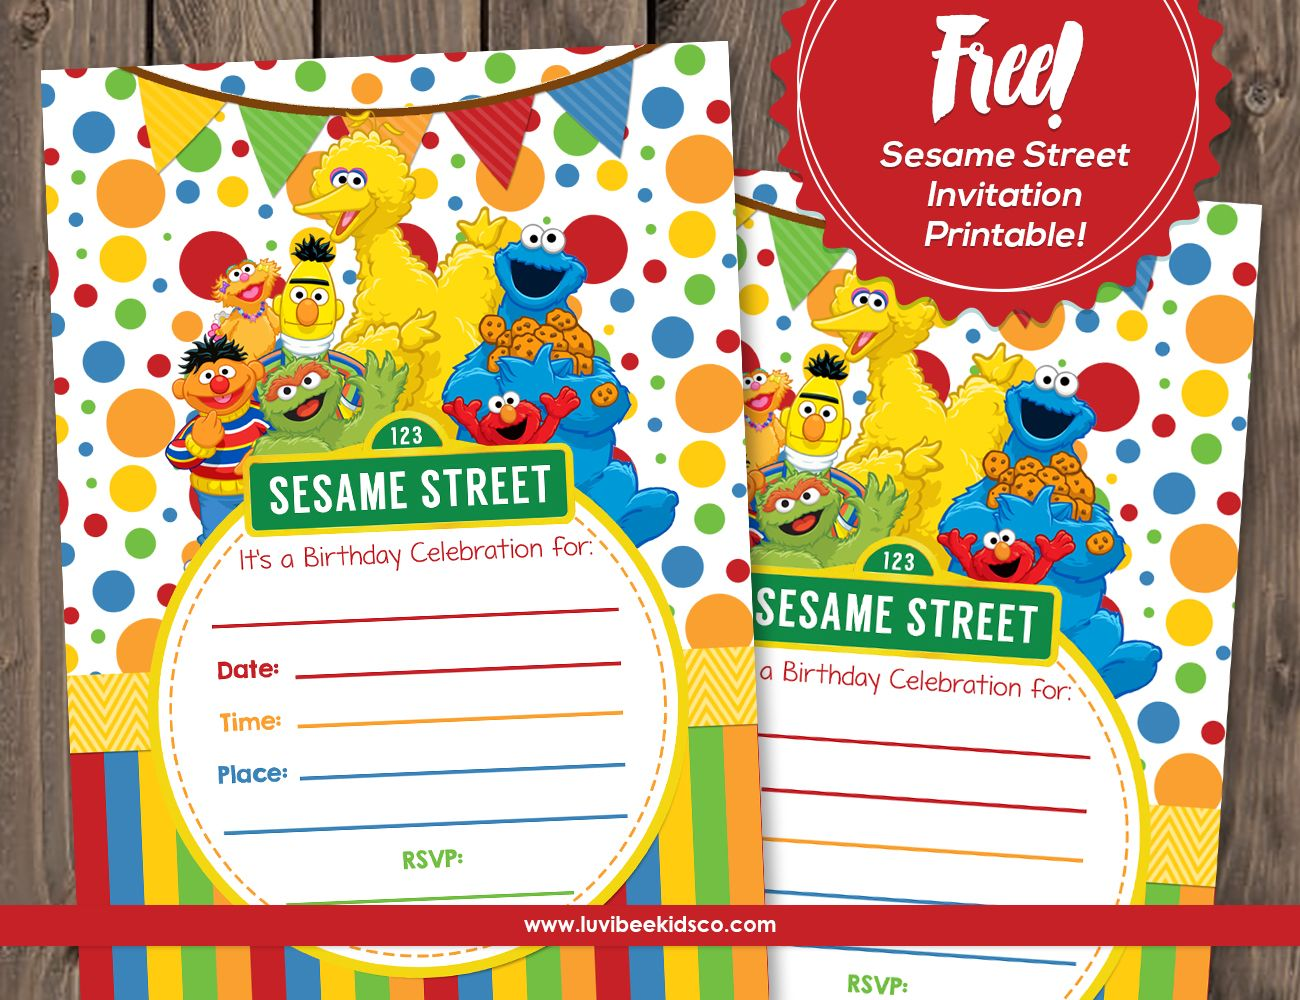 Free Sesame Street Invitation Printable Along With Custom Invitations And Birthday Shirt Designs